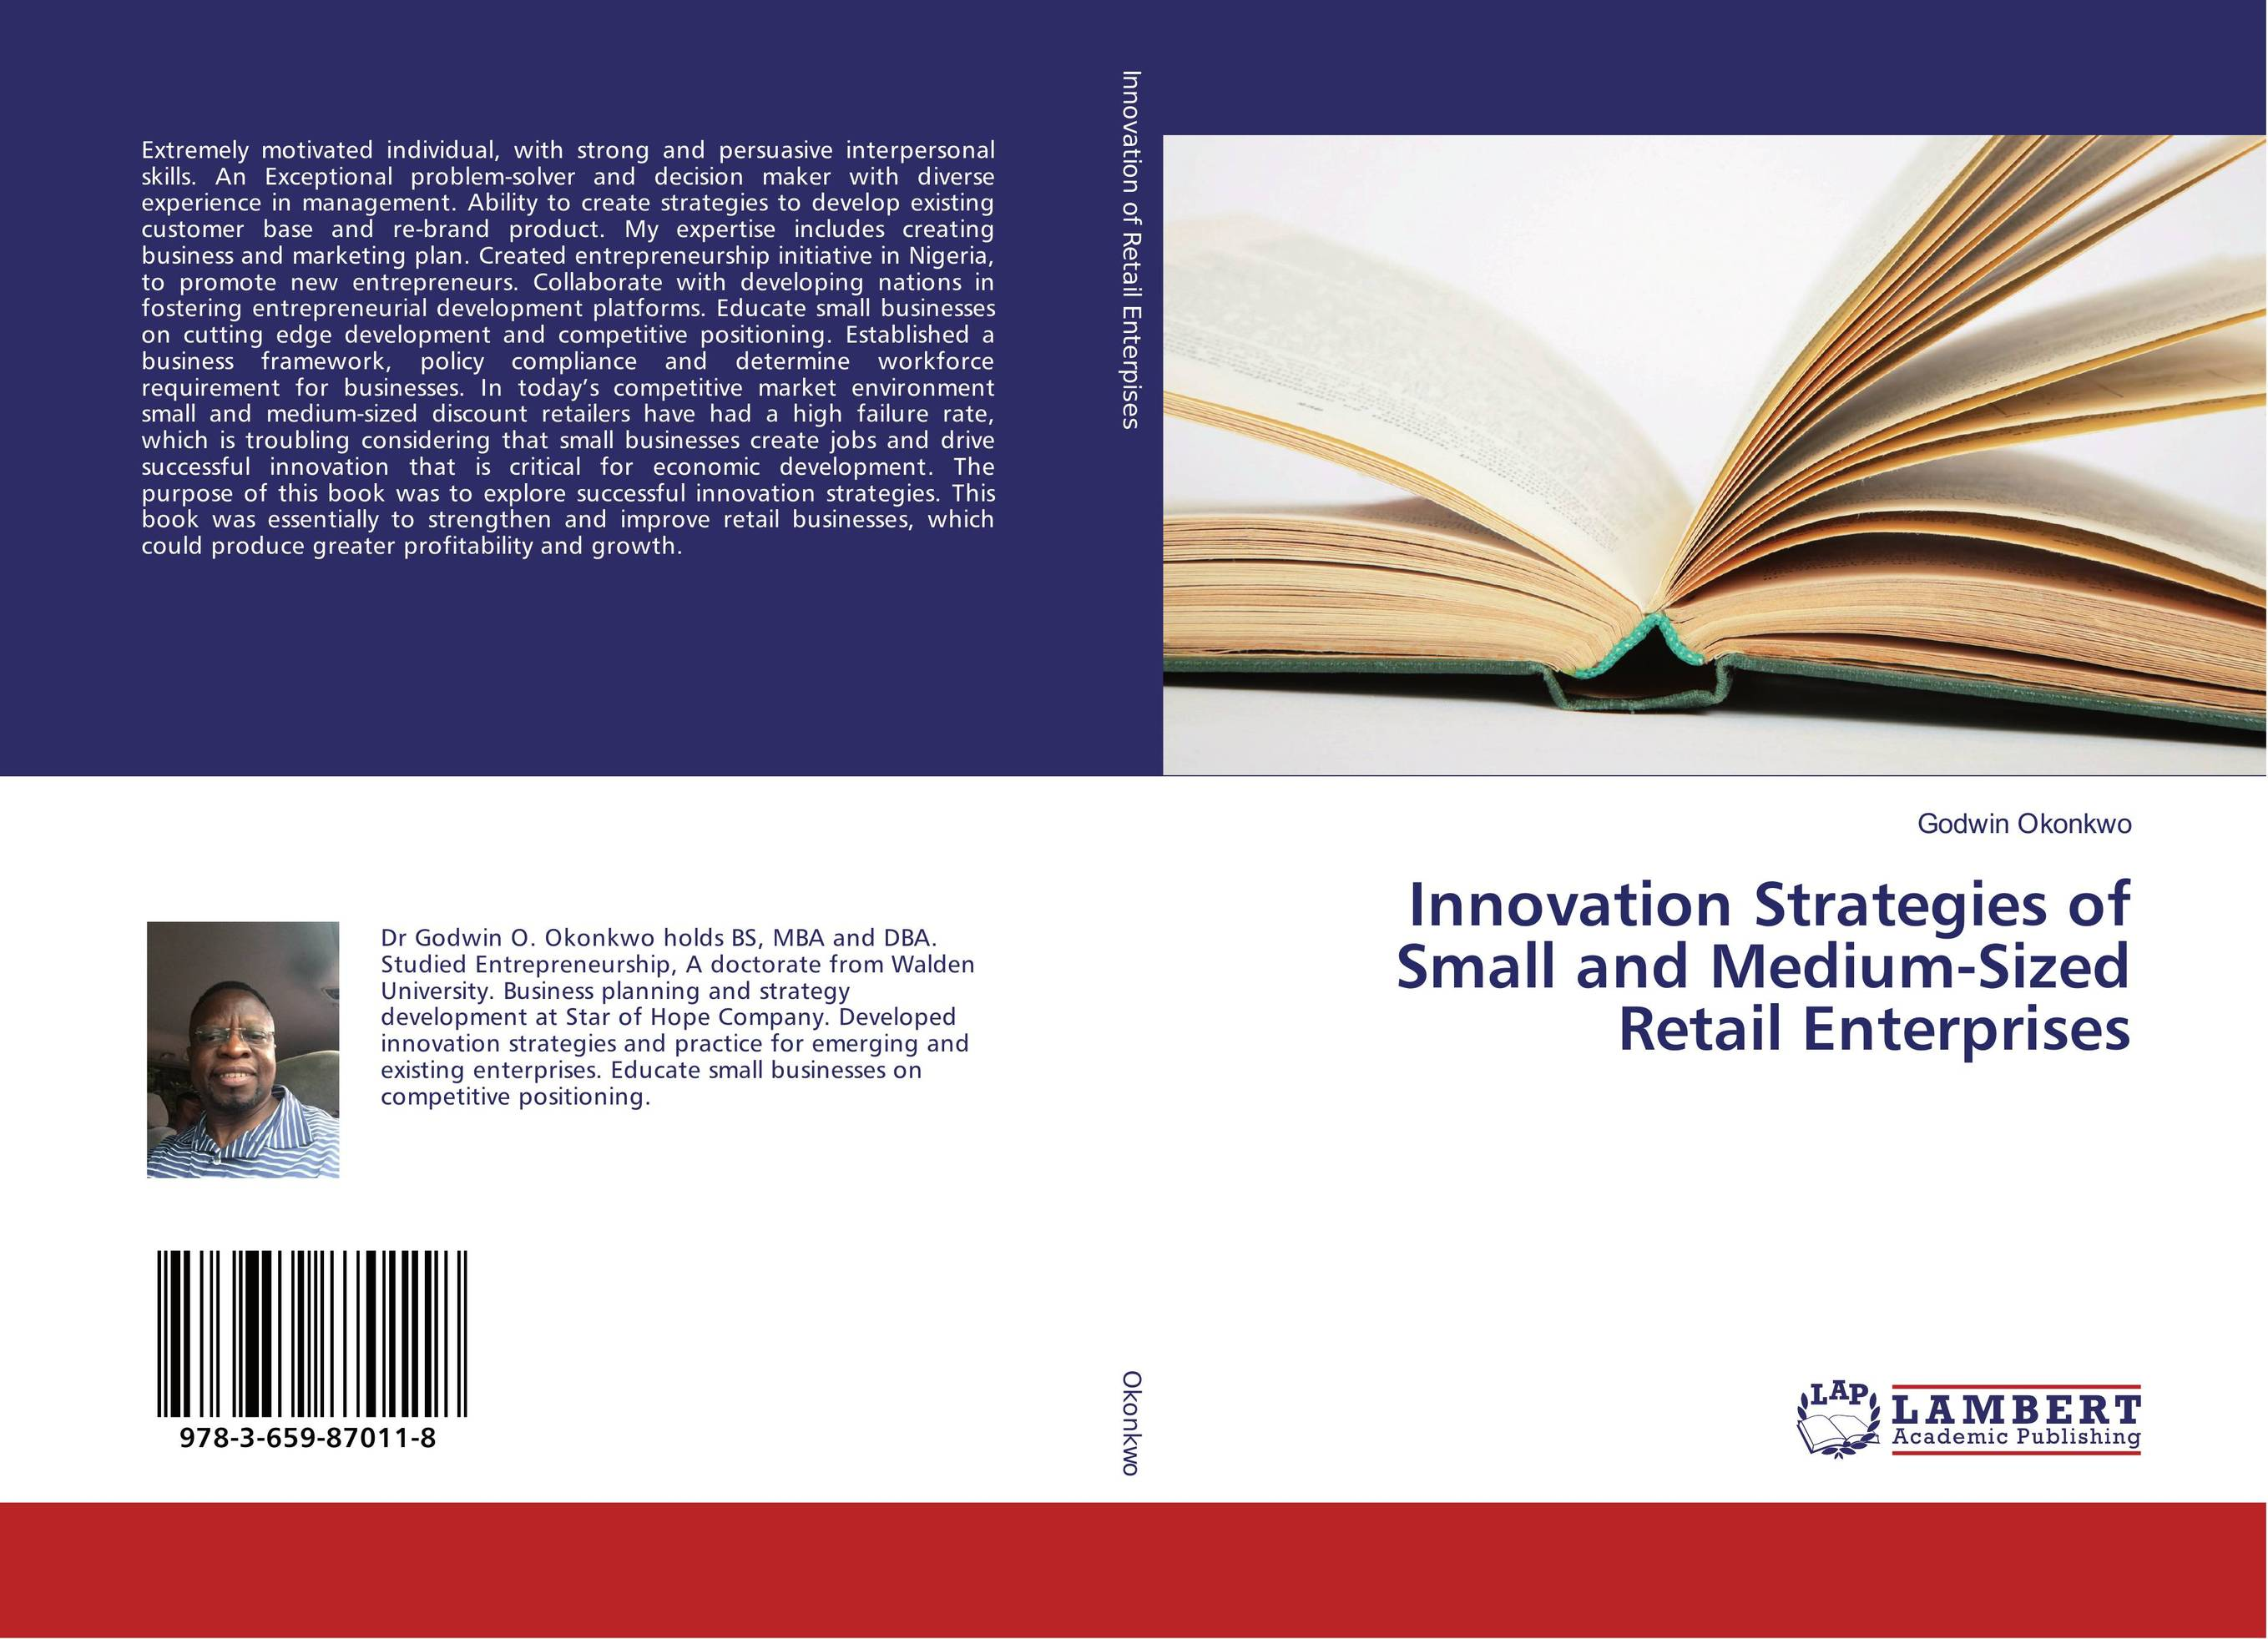 Innovation Strategies of Small and Medium-Sized Retail Enterprises henry chesbrough open services innovation rethinking your business to grow and compete in a new era